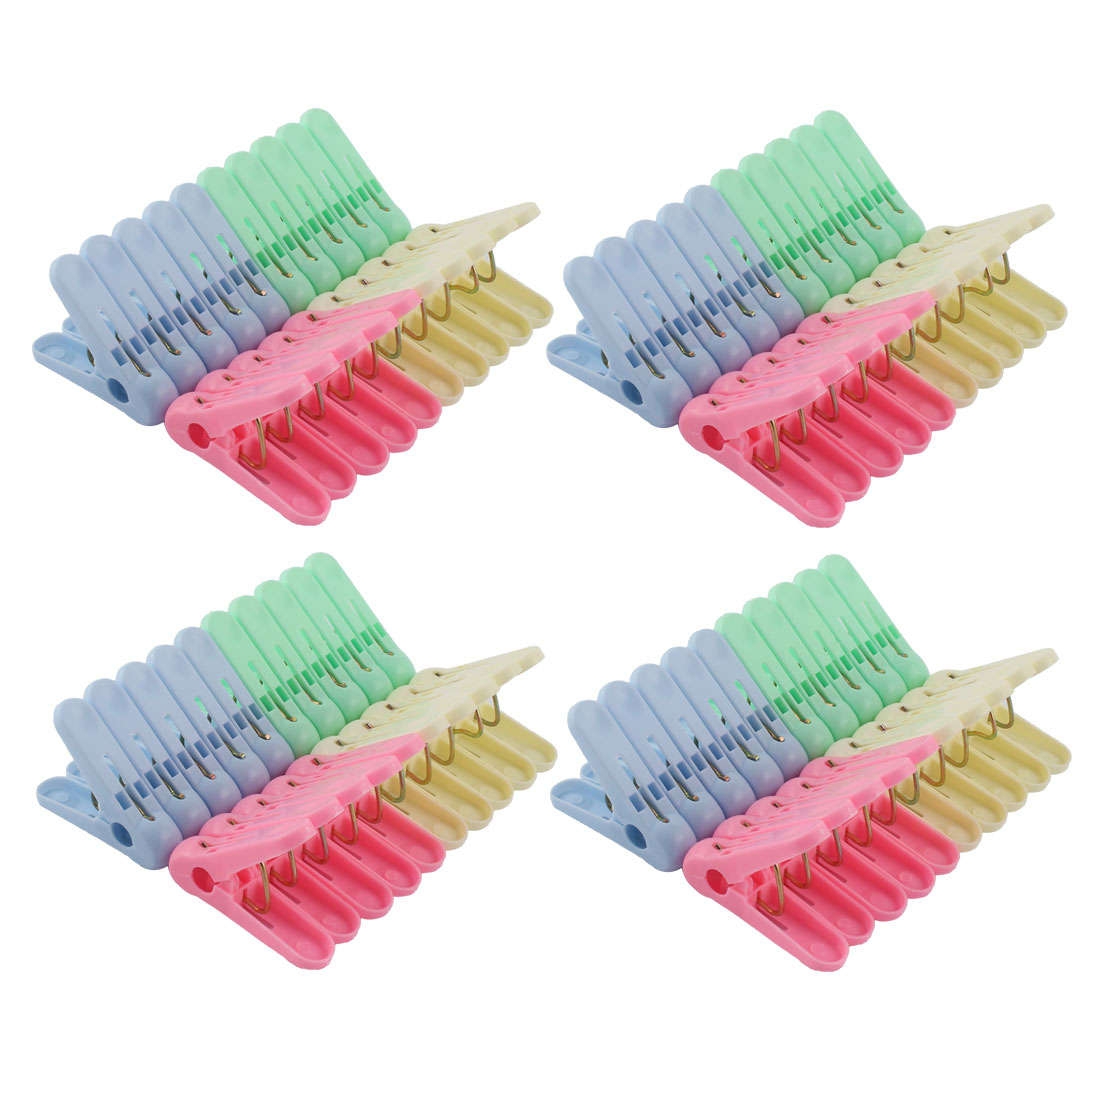 Household Plastic Socks Towel Clothespin Clothes Peg Clips Clamp 80pcs